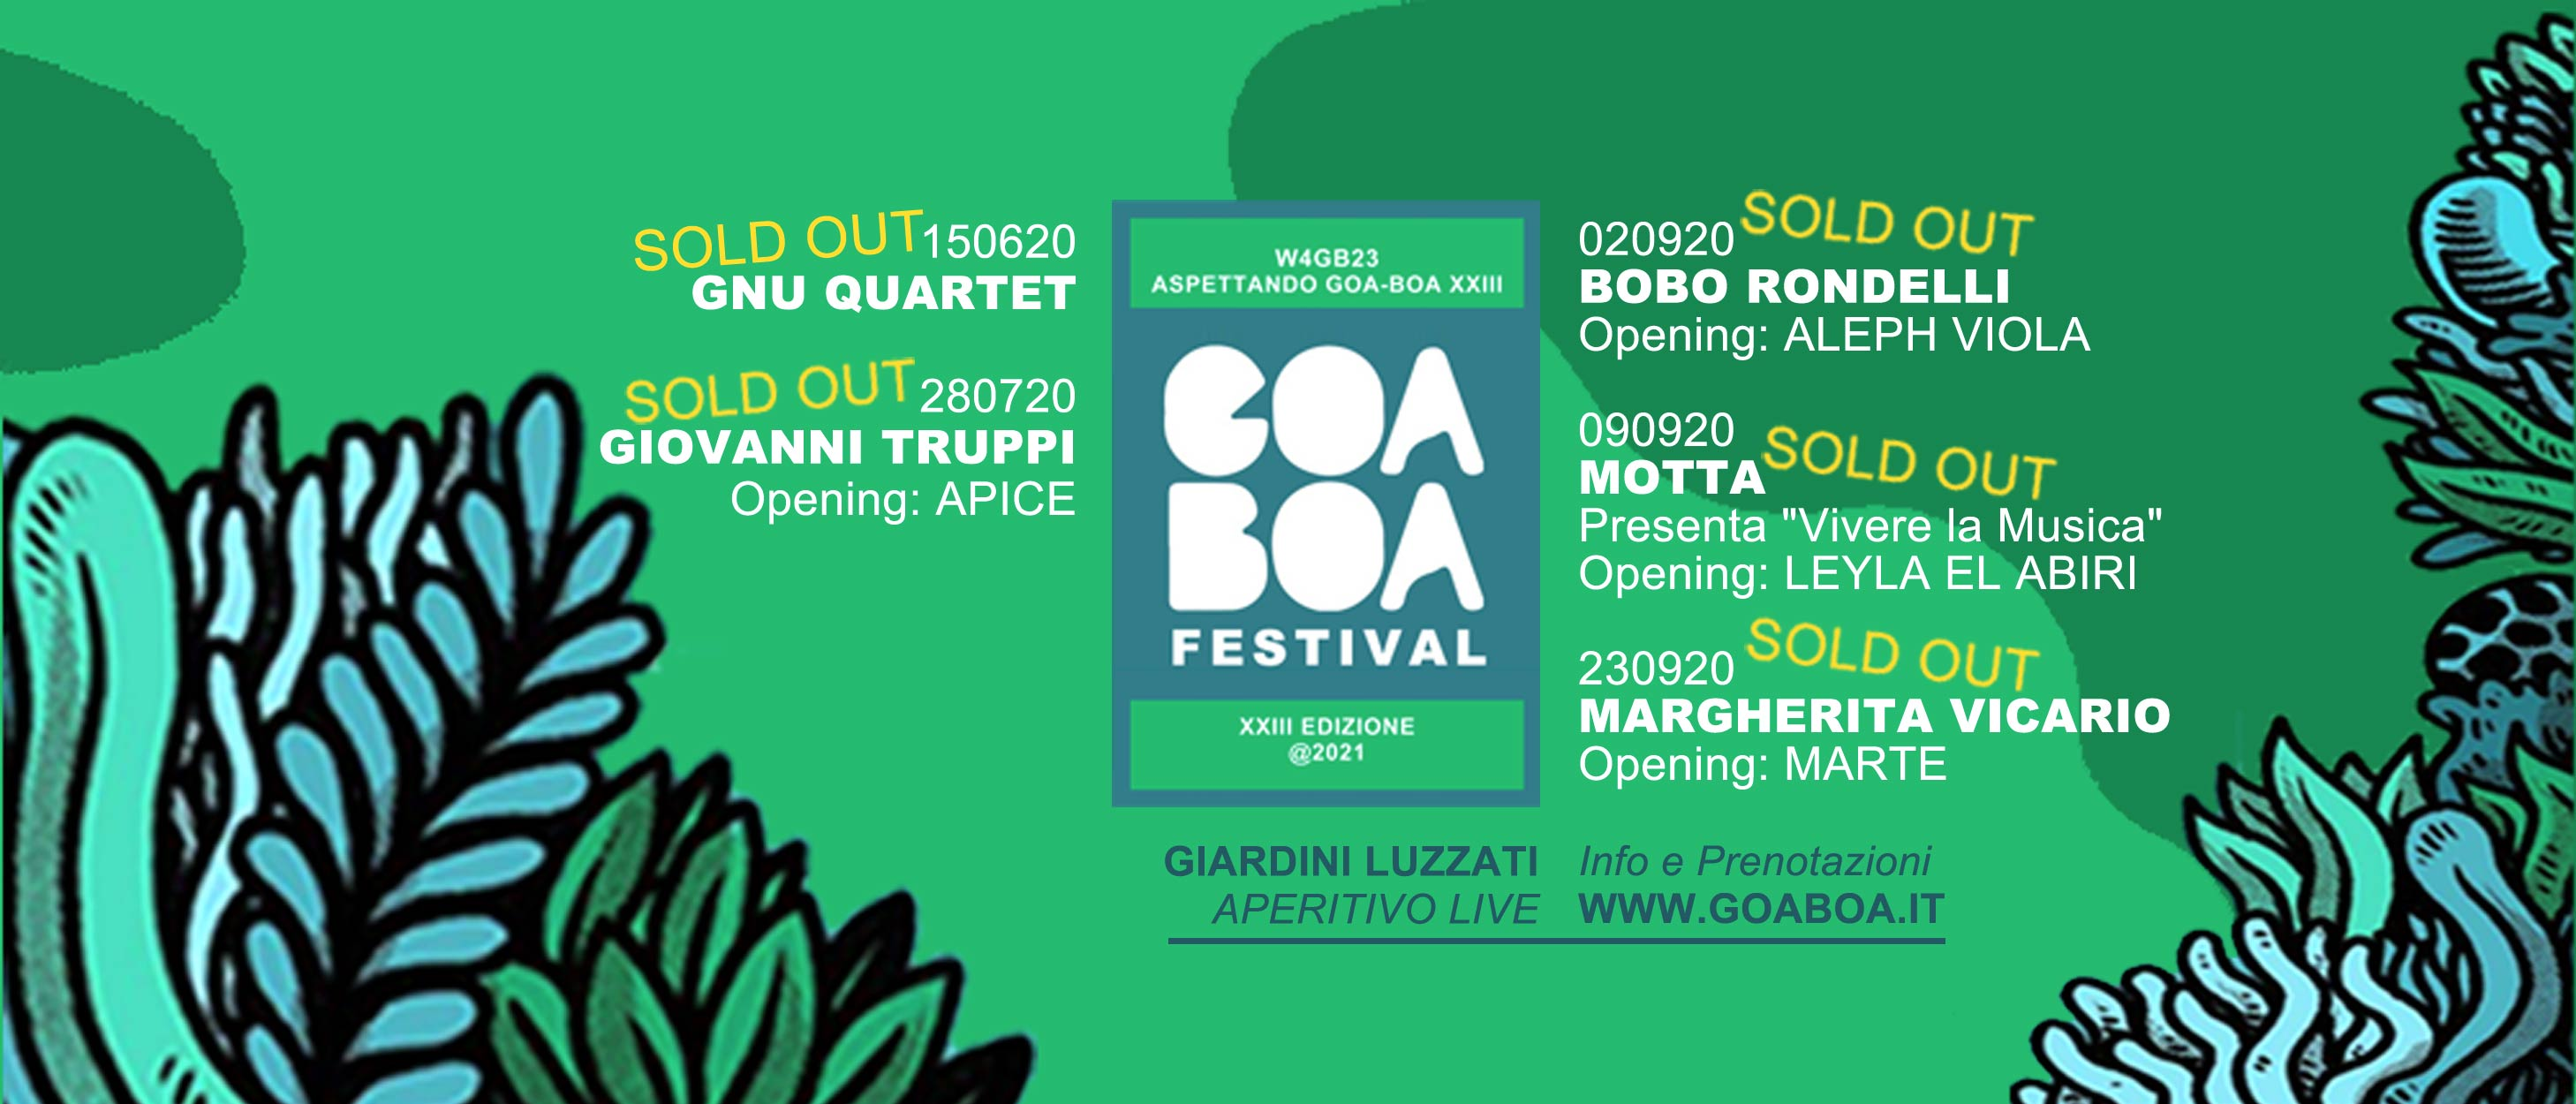 W4GB23 // ASPETTANDO GOA-BOA XXIII // SOLD OUT